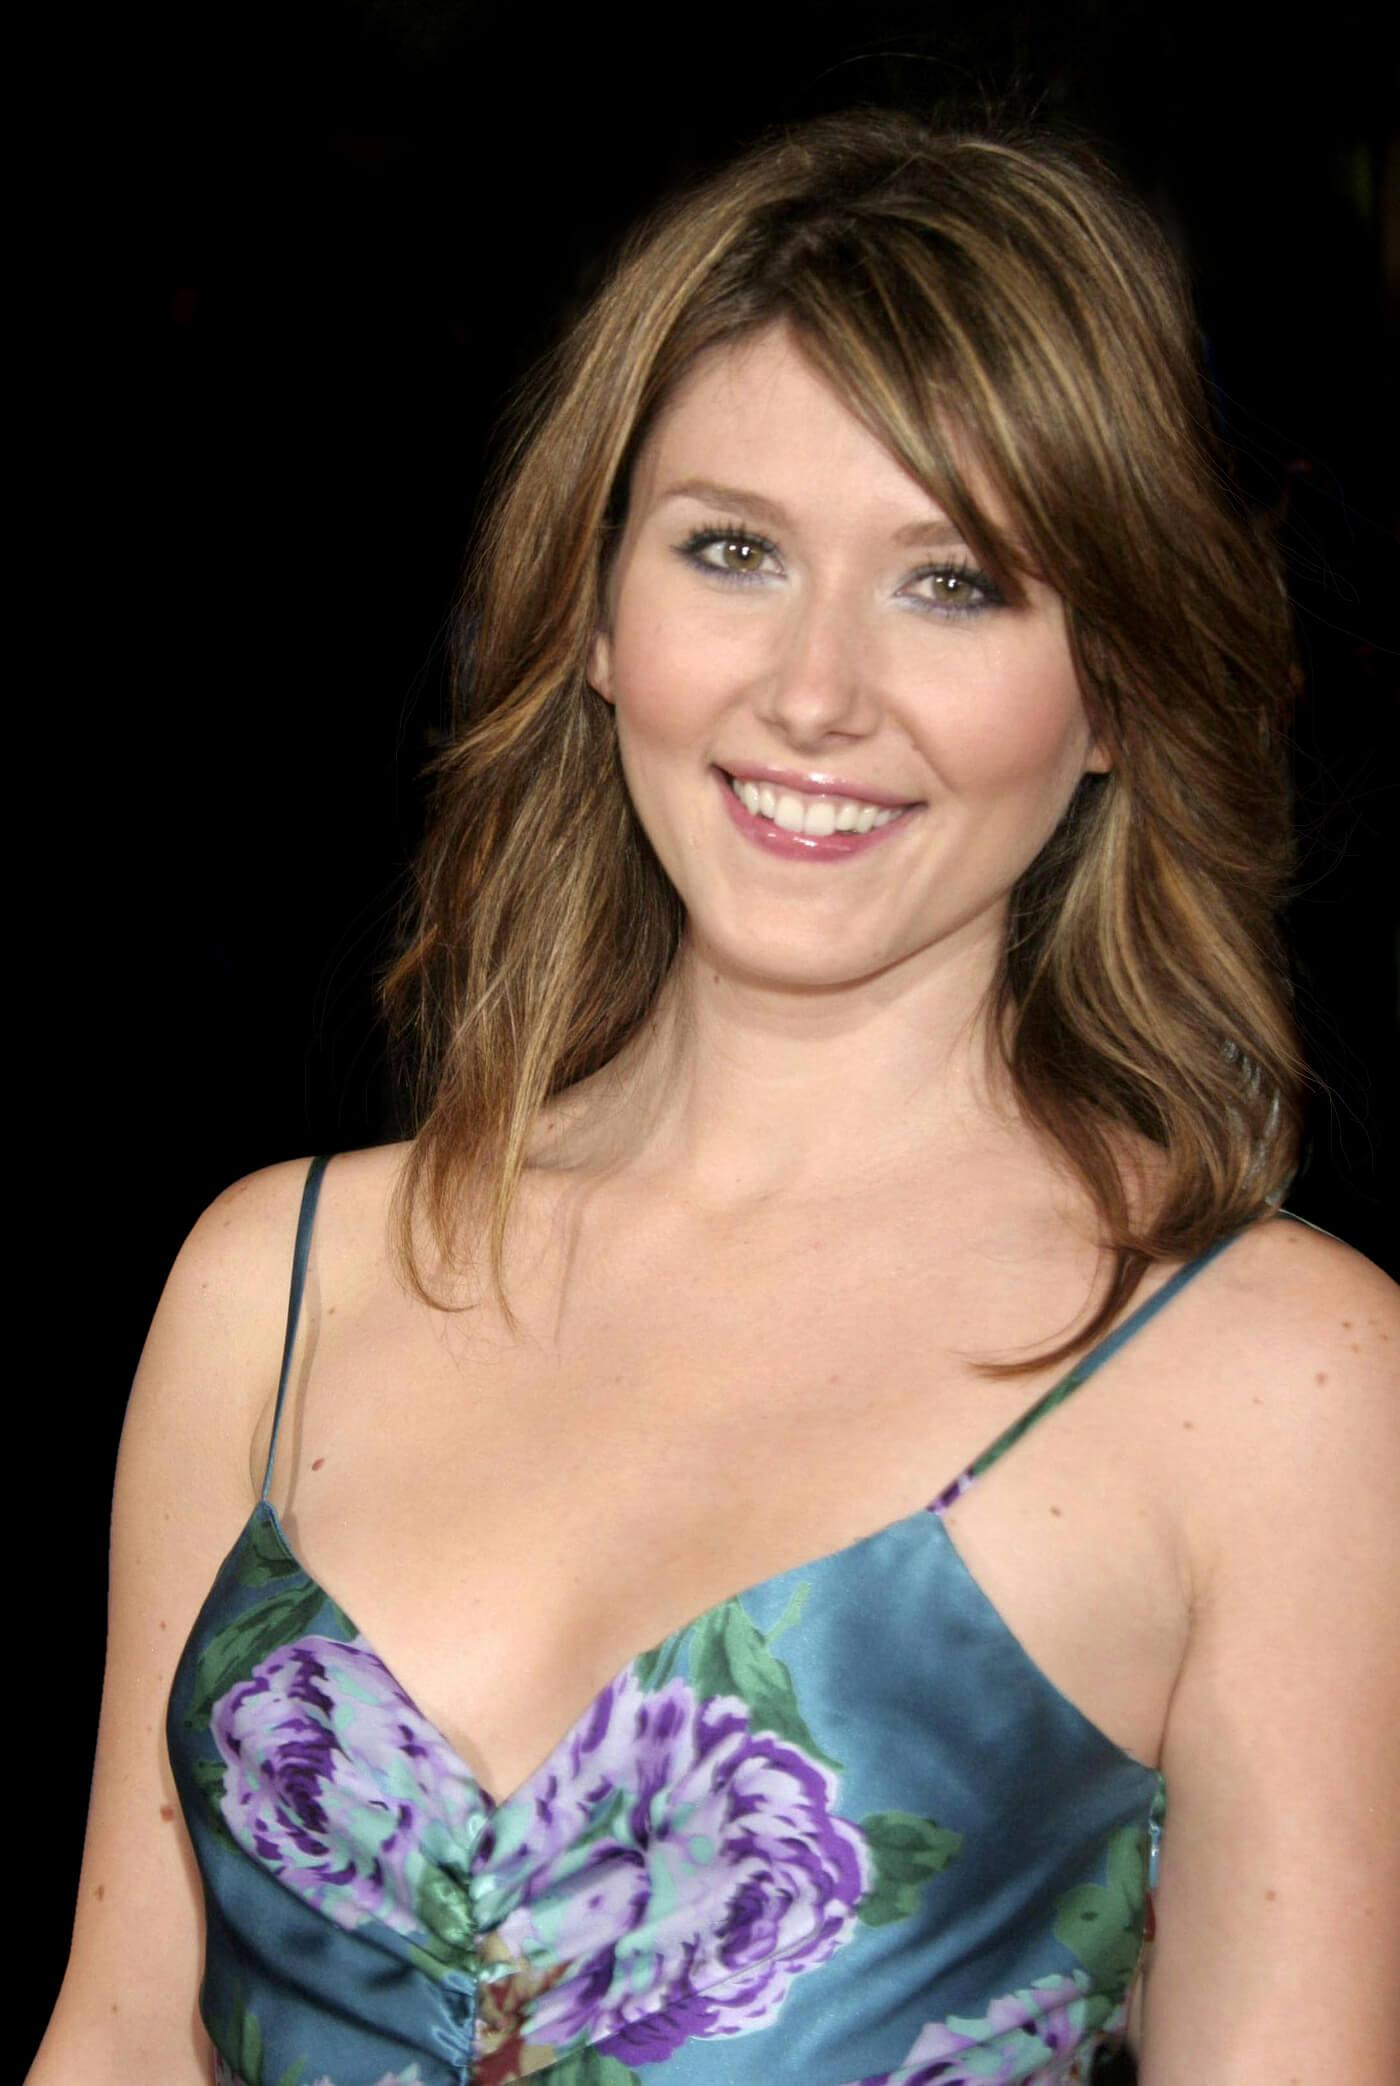 Jewel Staite awesome look pic (1)